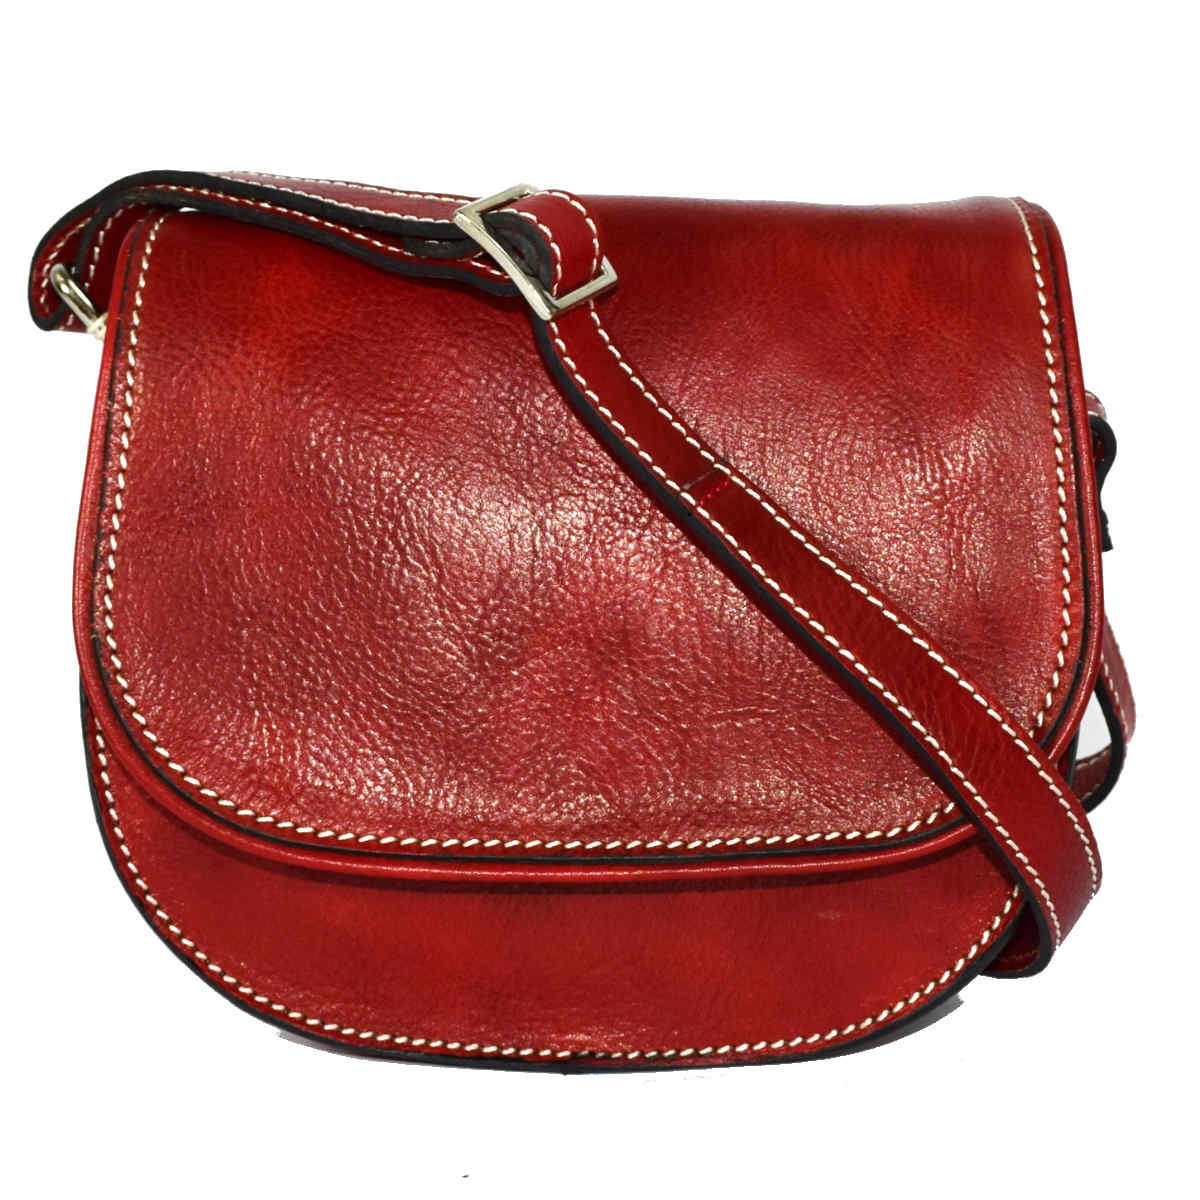 24583 BAG WITH FLAP ROUNDED by Bottega Fiorentina